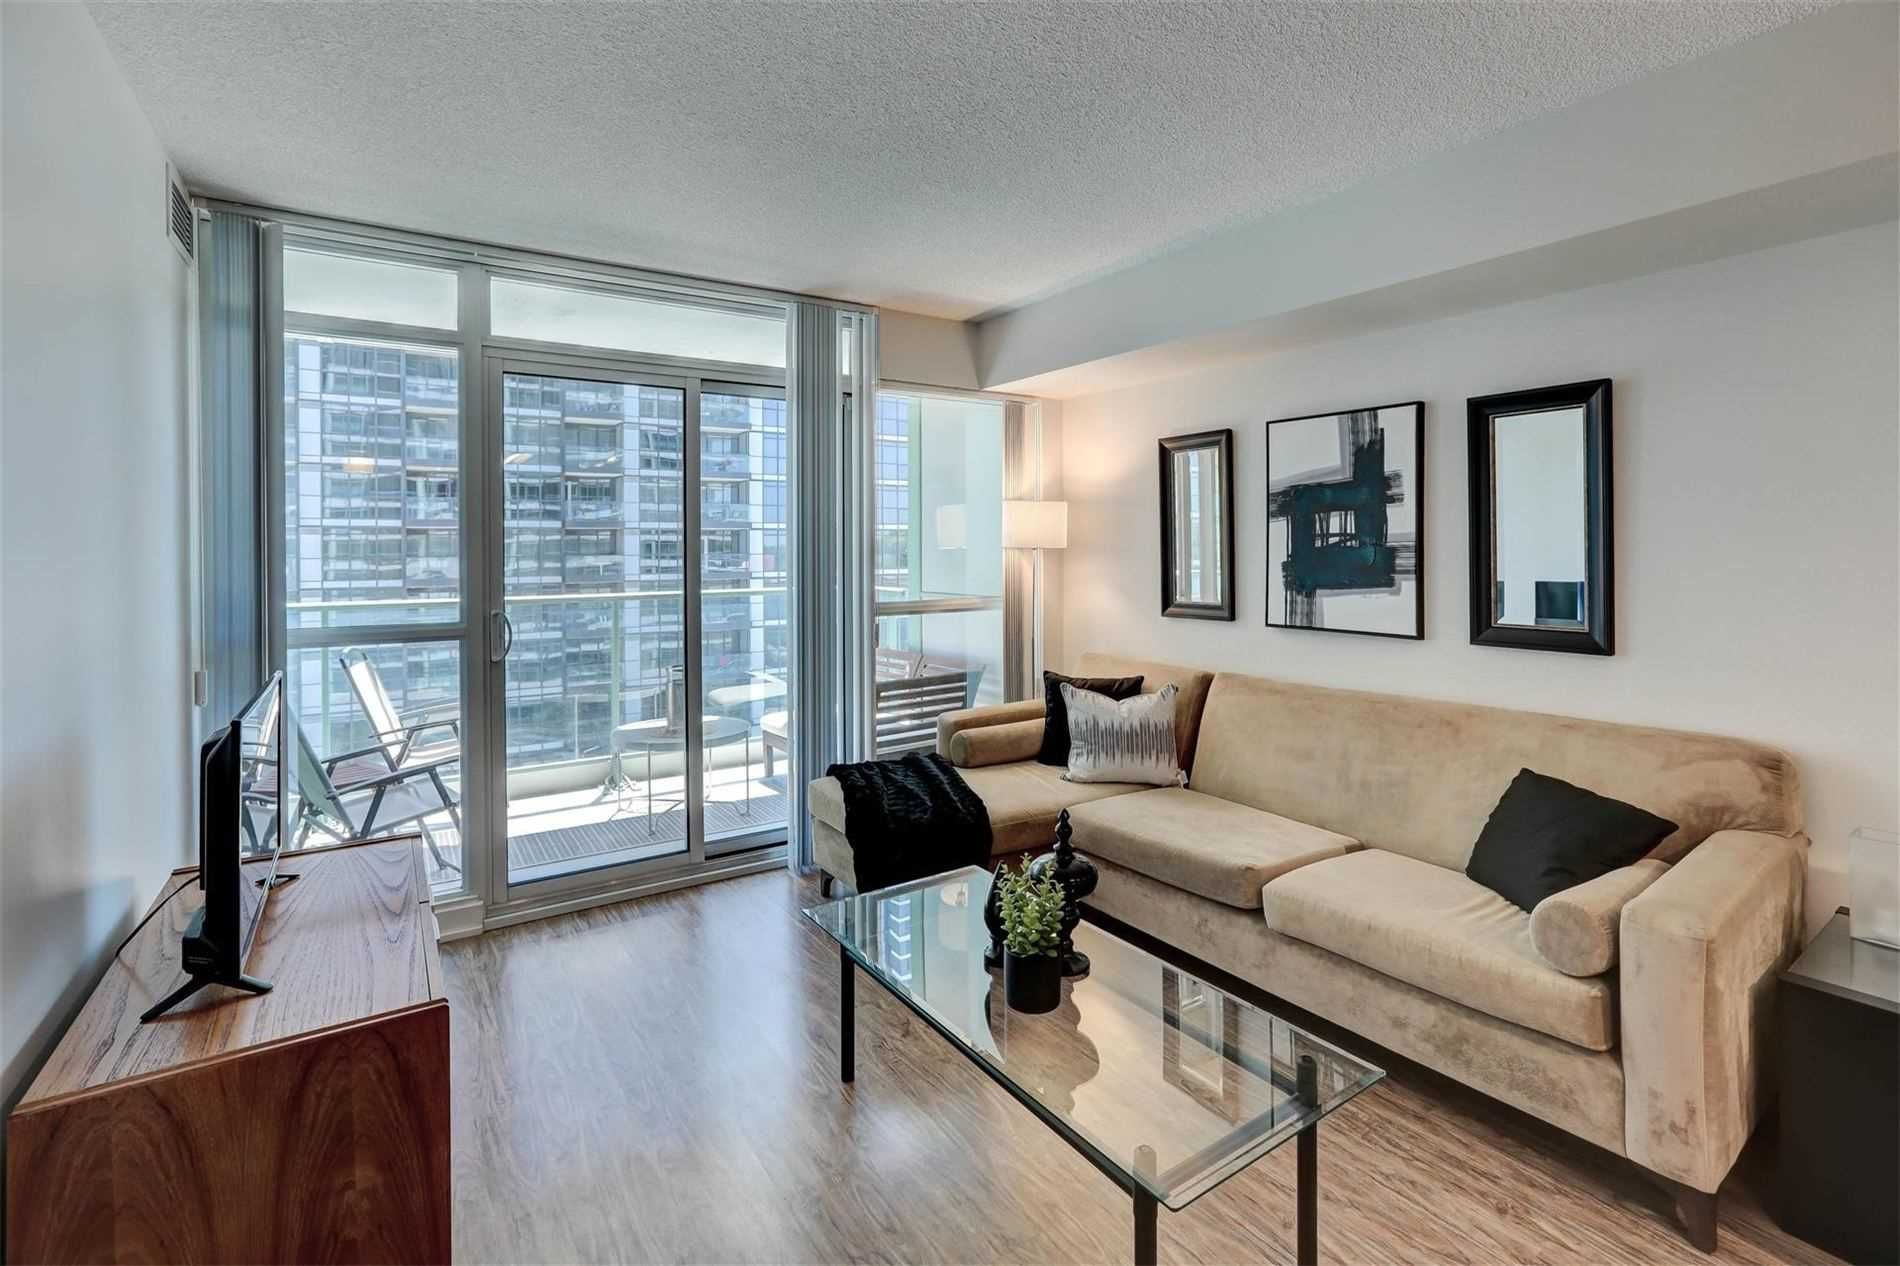 Main Photo: 712 15 Singer Court in Toronto: Bayview Village Condo for sale (Toronto C15)  : MLS®# C4800880